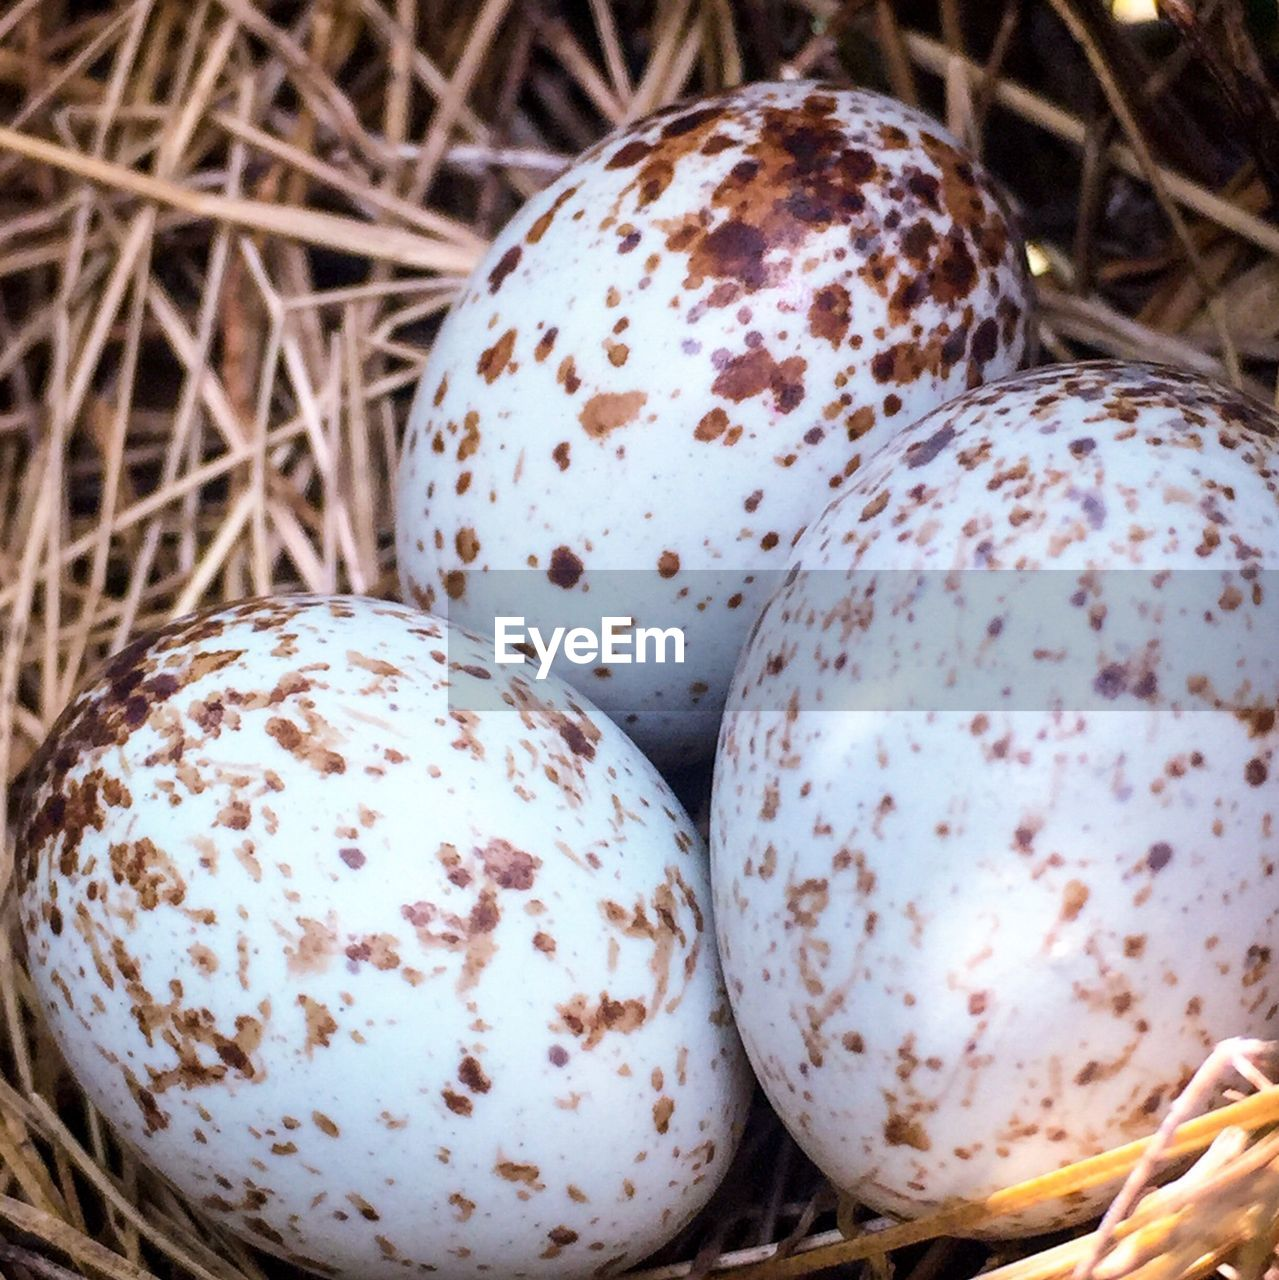 egg, food and drink, easter, easter egg, food, close-up, no people, day, celebration, nature, fragility, outdoors, healthy eating, freshness